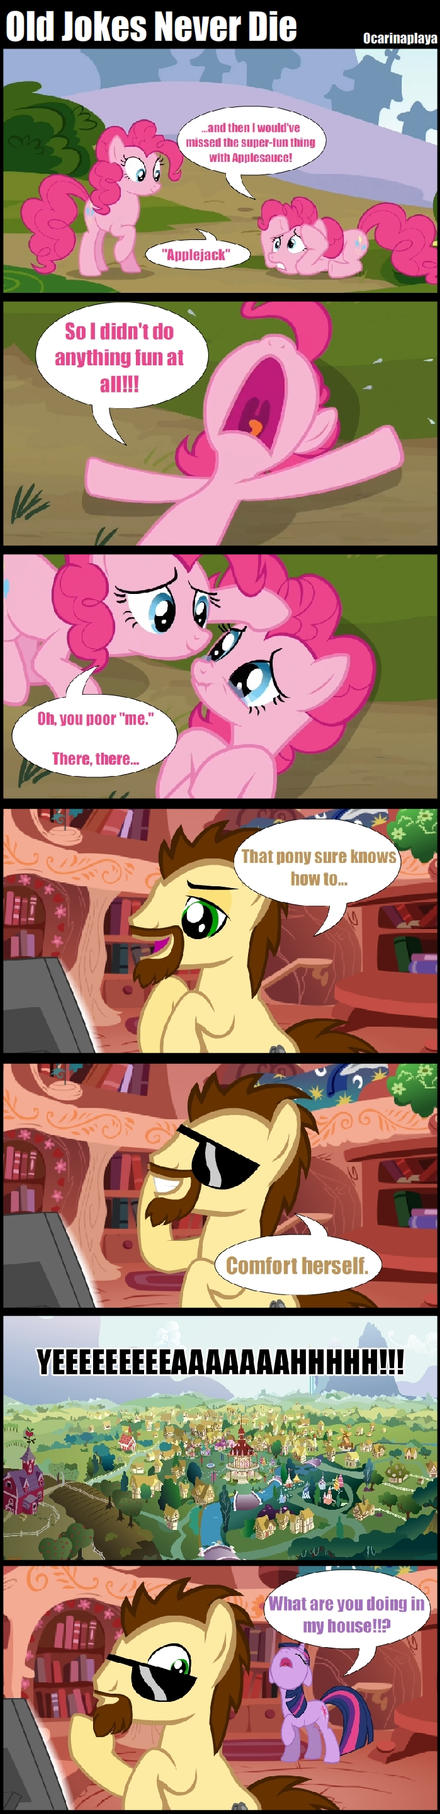 Old jokes by Ocarinaplaya